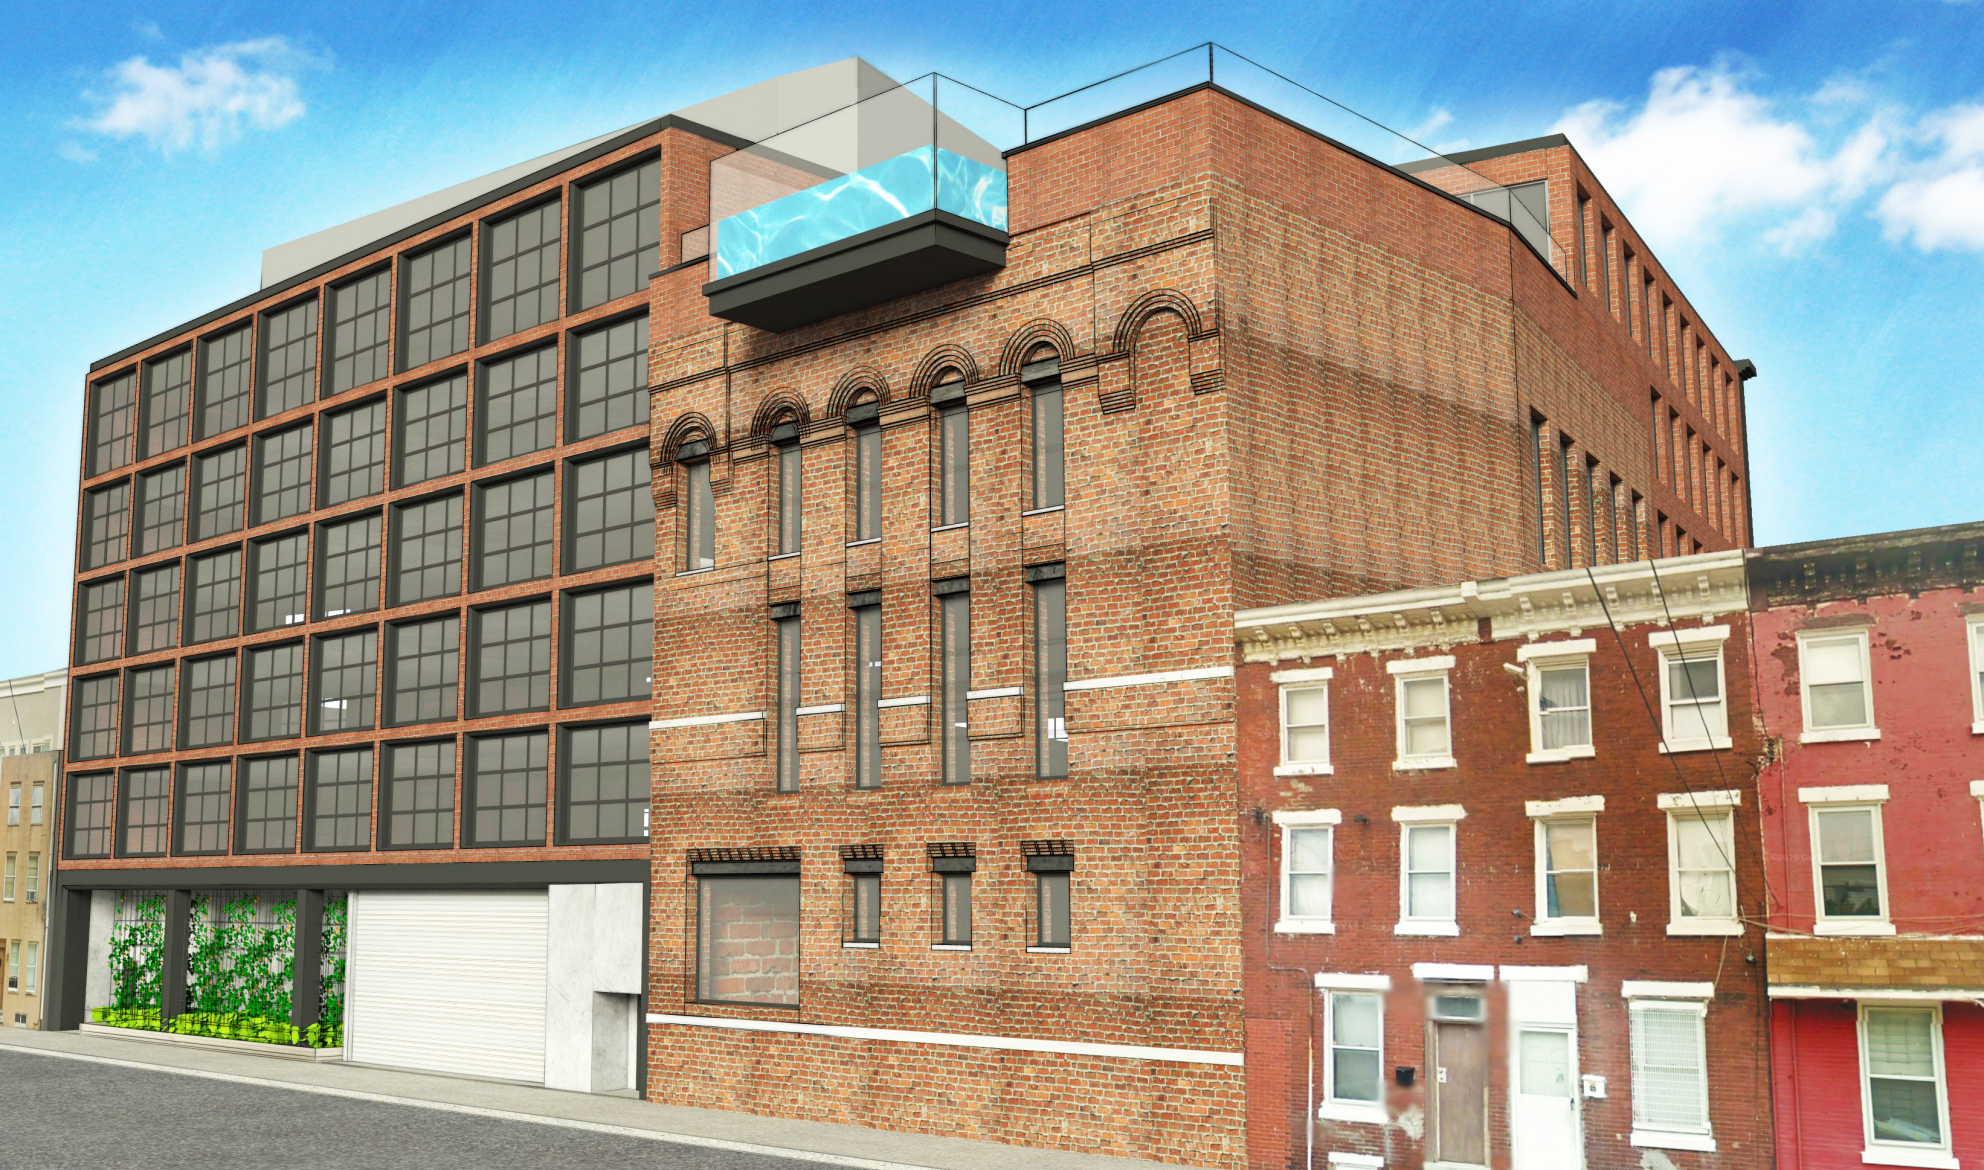 Demolition permits issued for site of proposed Fishtown hotel